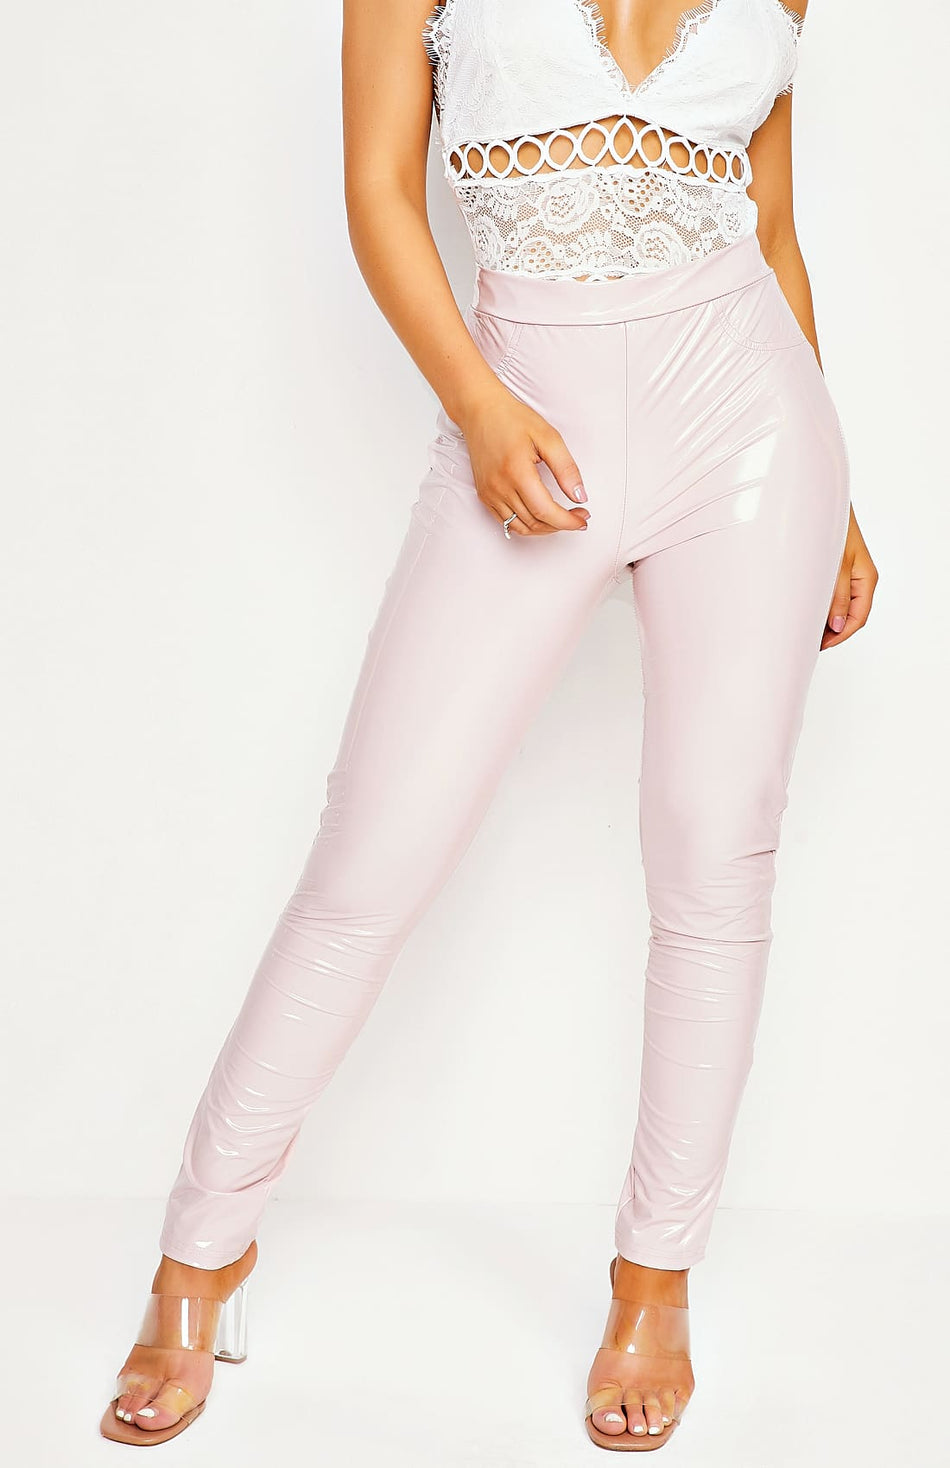 Roze wetlook hoge taille Jeggings